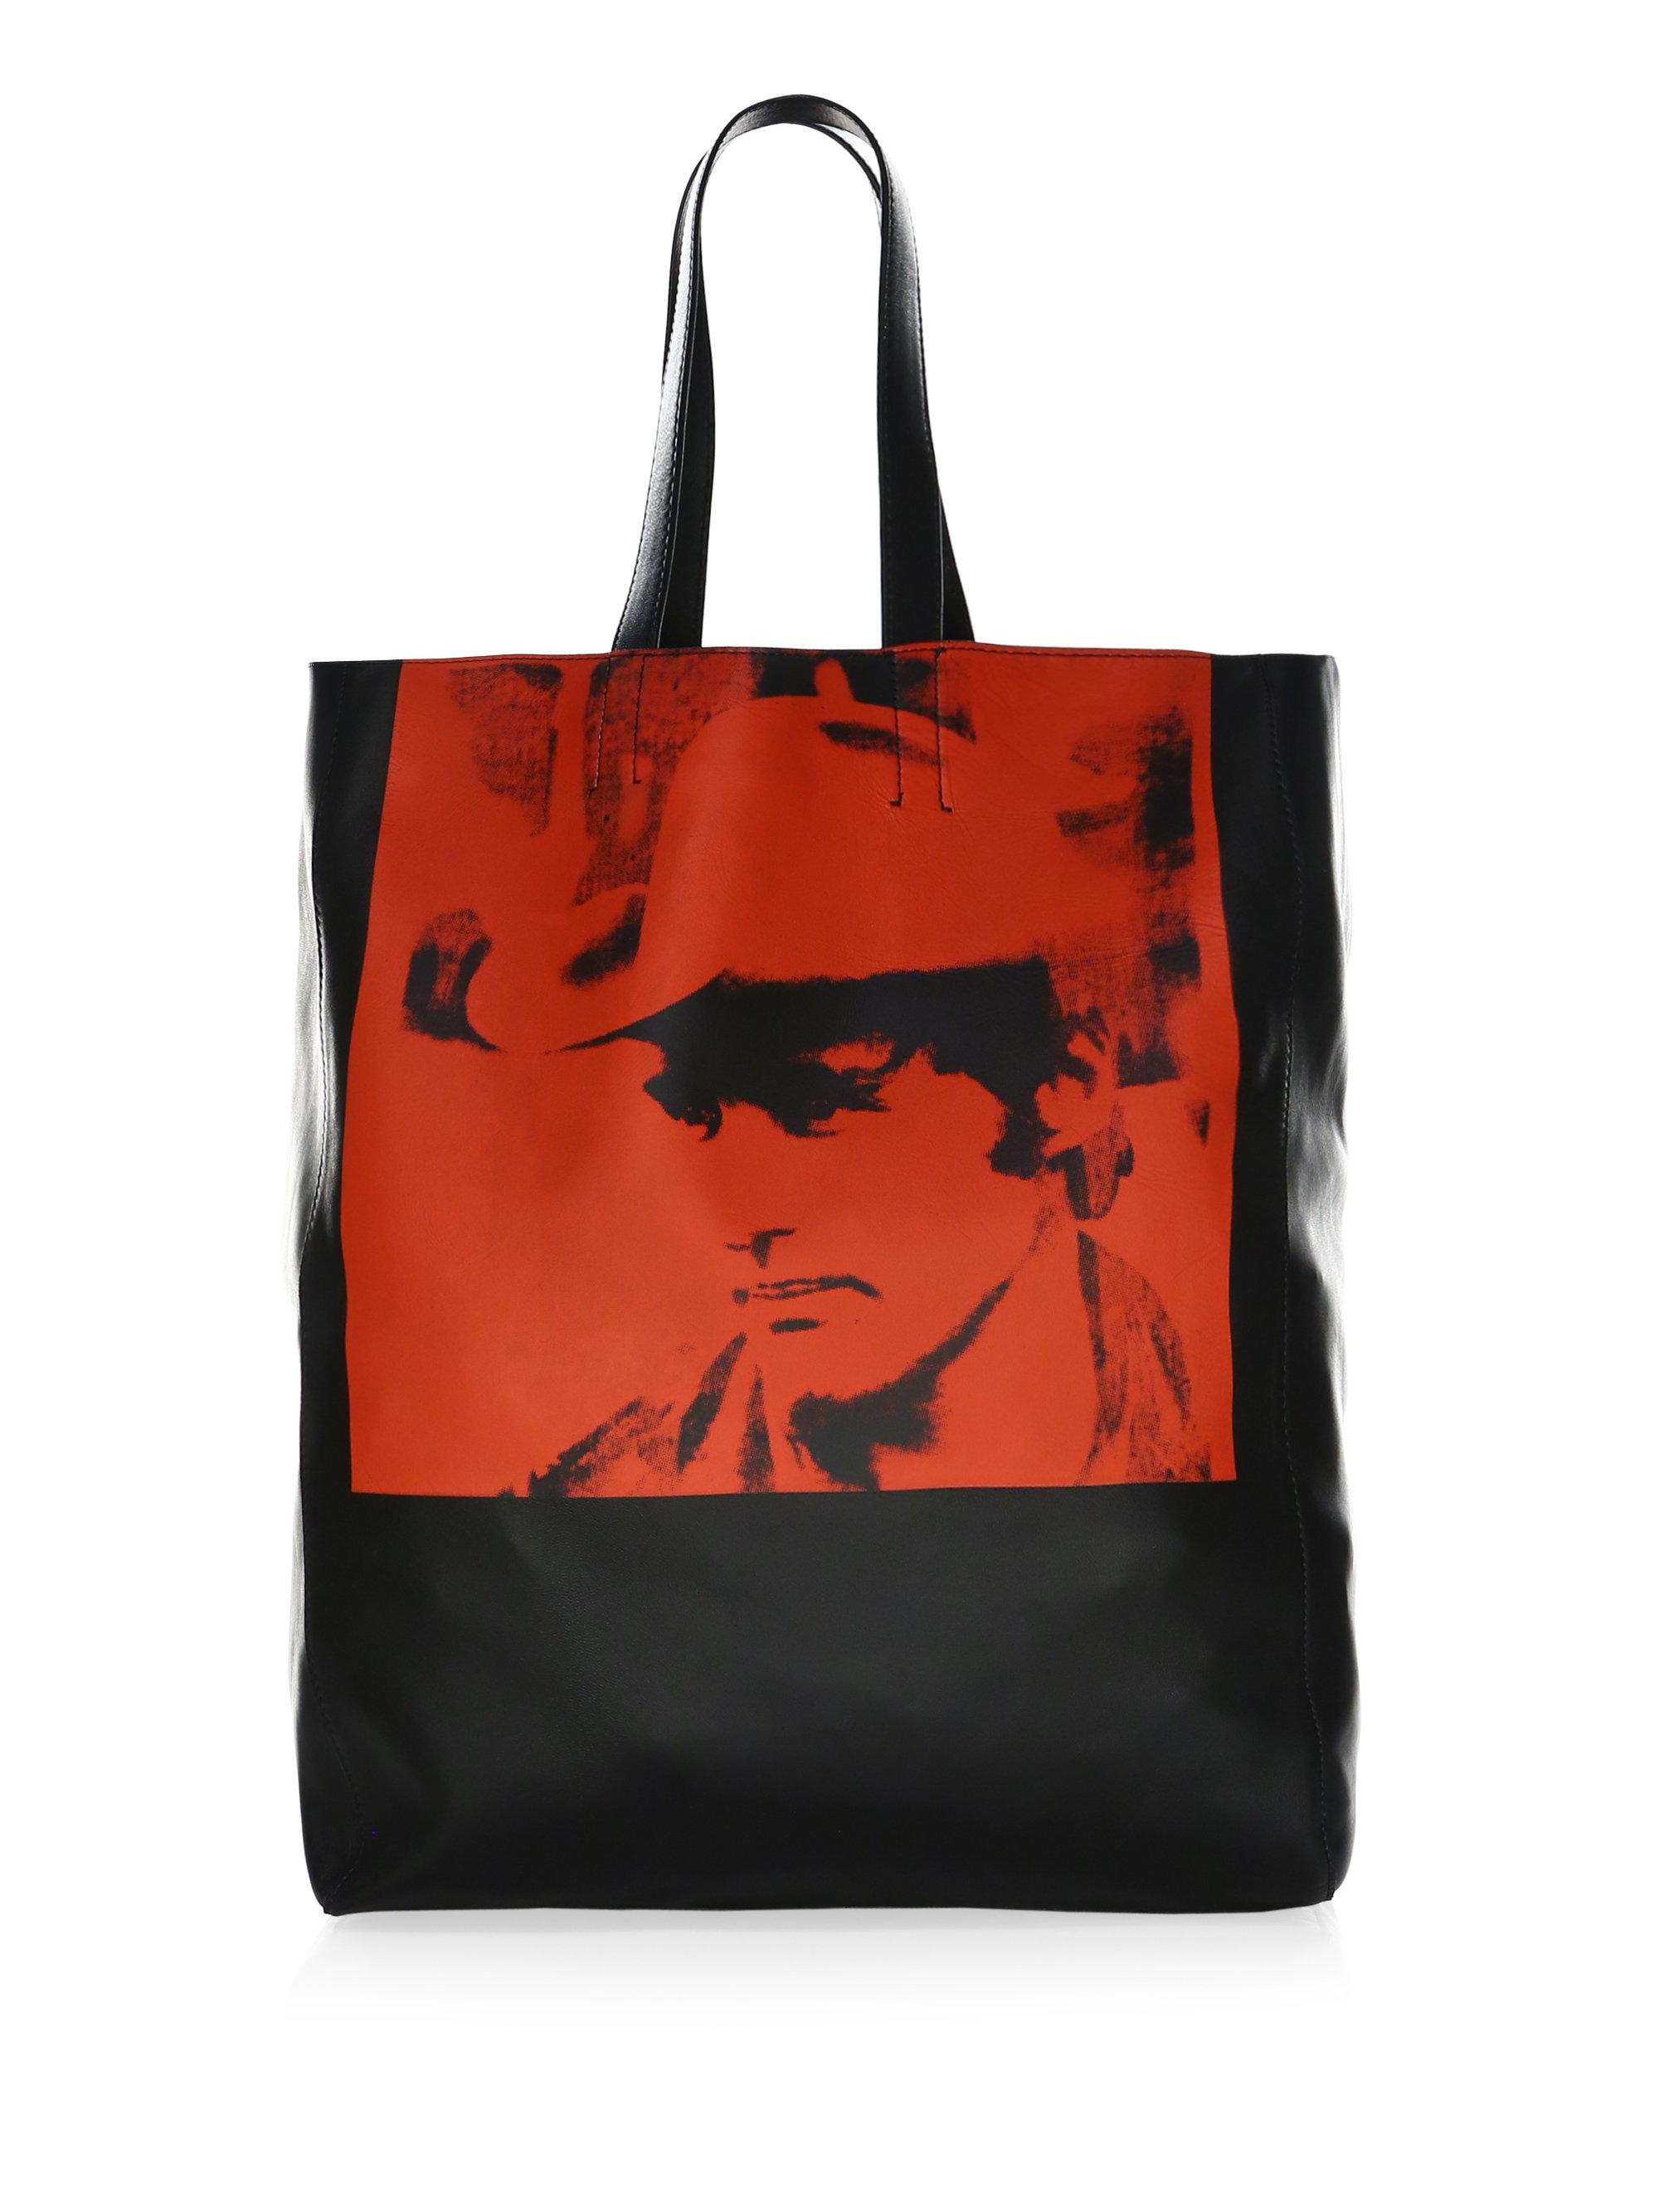 VIDA Tote Bag - Spirit Realm by VIDA